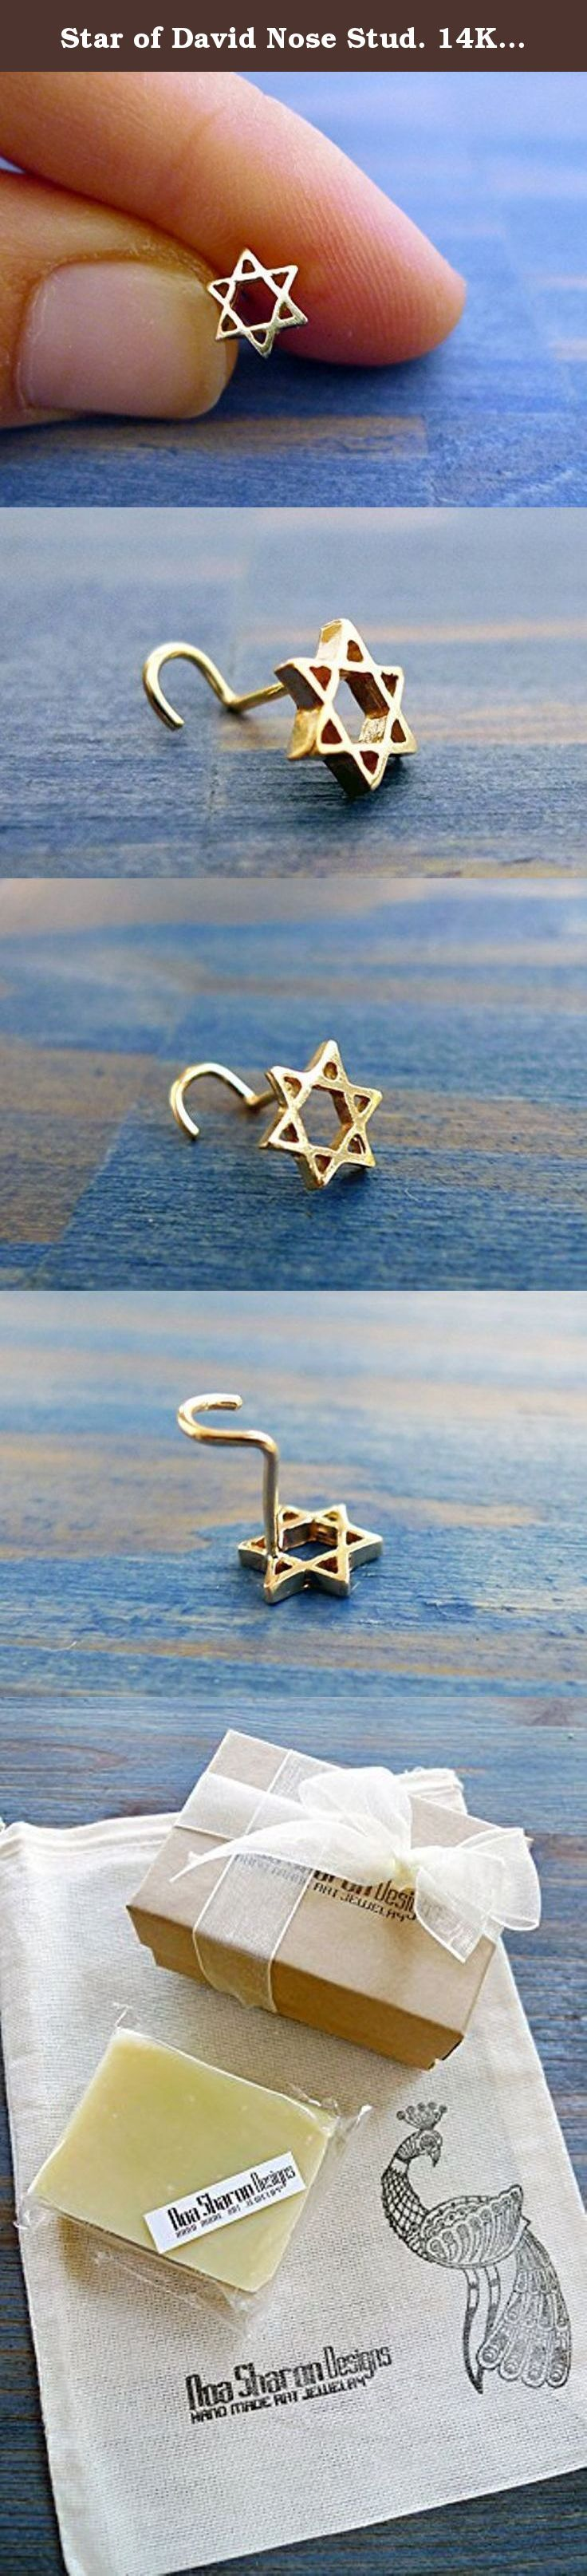 """Star of David Nose Stud. 14K Handmade Gold Nose Stud. Recycled Gold. Eco Friendly. Choose Your Thickness. Magen David Nose Stud. Man or Woman Jewelry. Unisex. A handmade gold nose stud with tiny delicate handmade Star of David symbol. This is a jewish talisman called in hebrew: """"Magen David"""" It is designed to fit both man and woman as a unisex jewelry with unique symbolism. You can choose your preferred thickness of the star: for example, if you have a tiny nose I'd recommend the thinner..."""